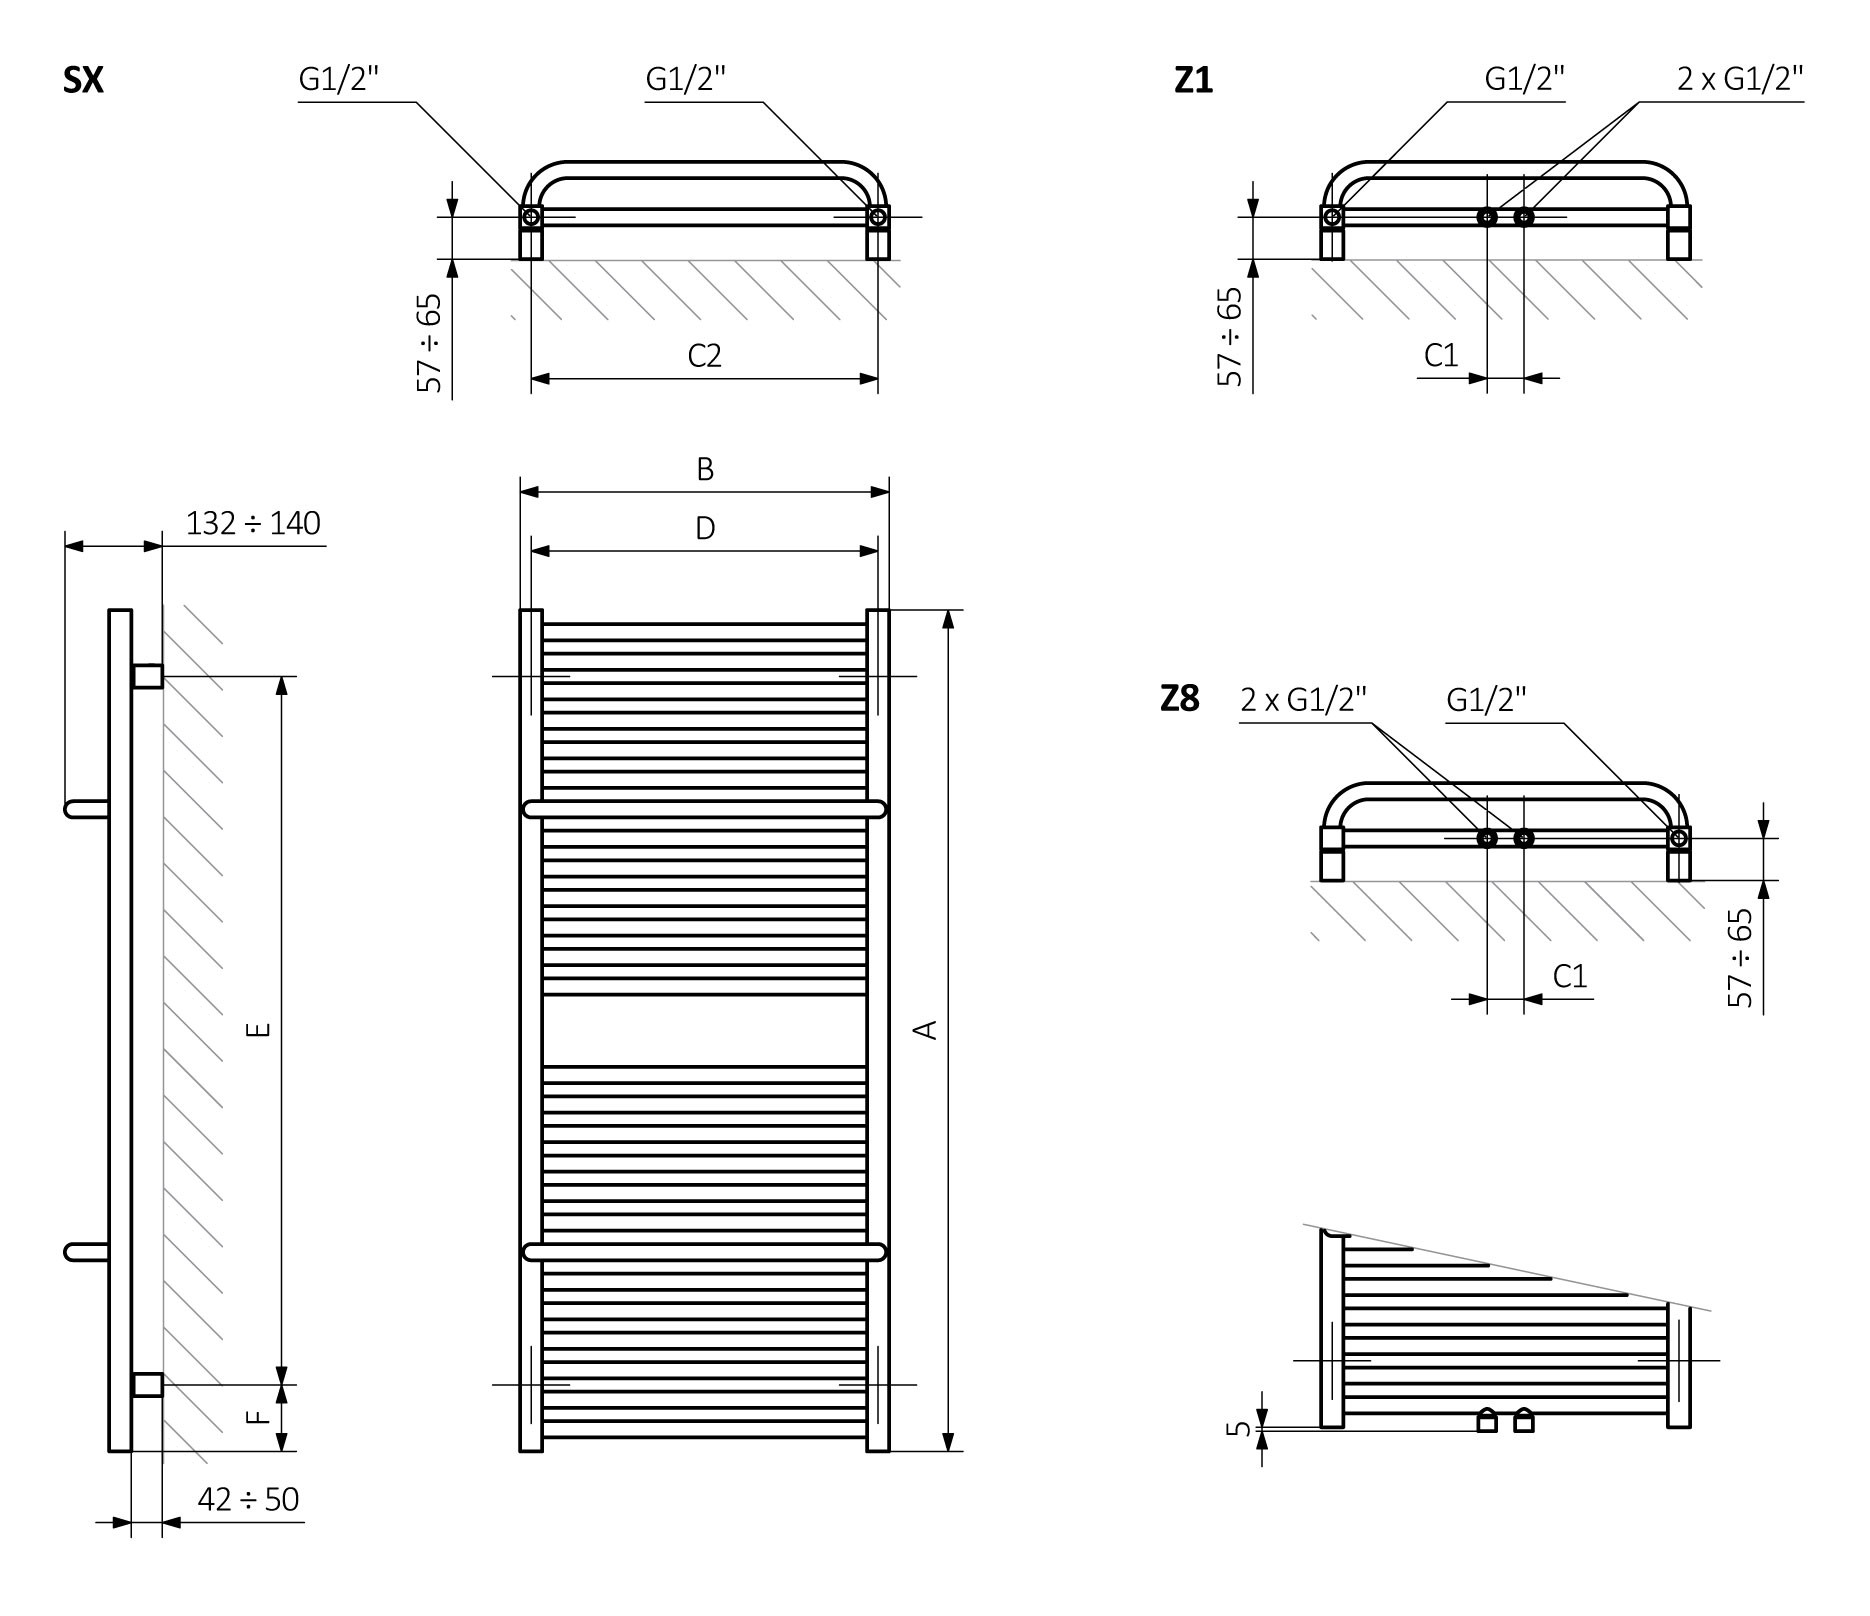 <p>A – Height, B – Width, C1-C5 – Distance between pipe centres, D – Horizontal distance between mounting bracket centres, E – Vertical distance between mounting brackets, F – Distance between a mounting bracket and the bottom of the radiator</p>